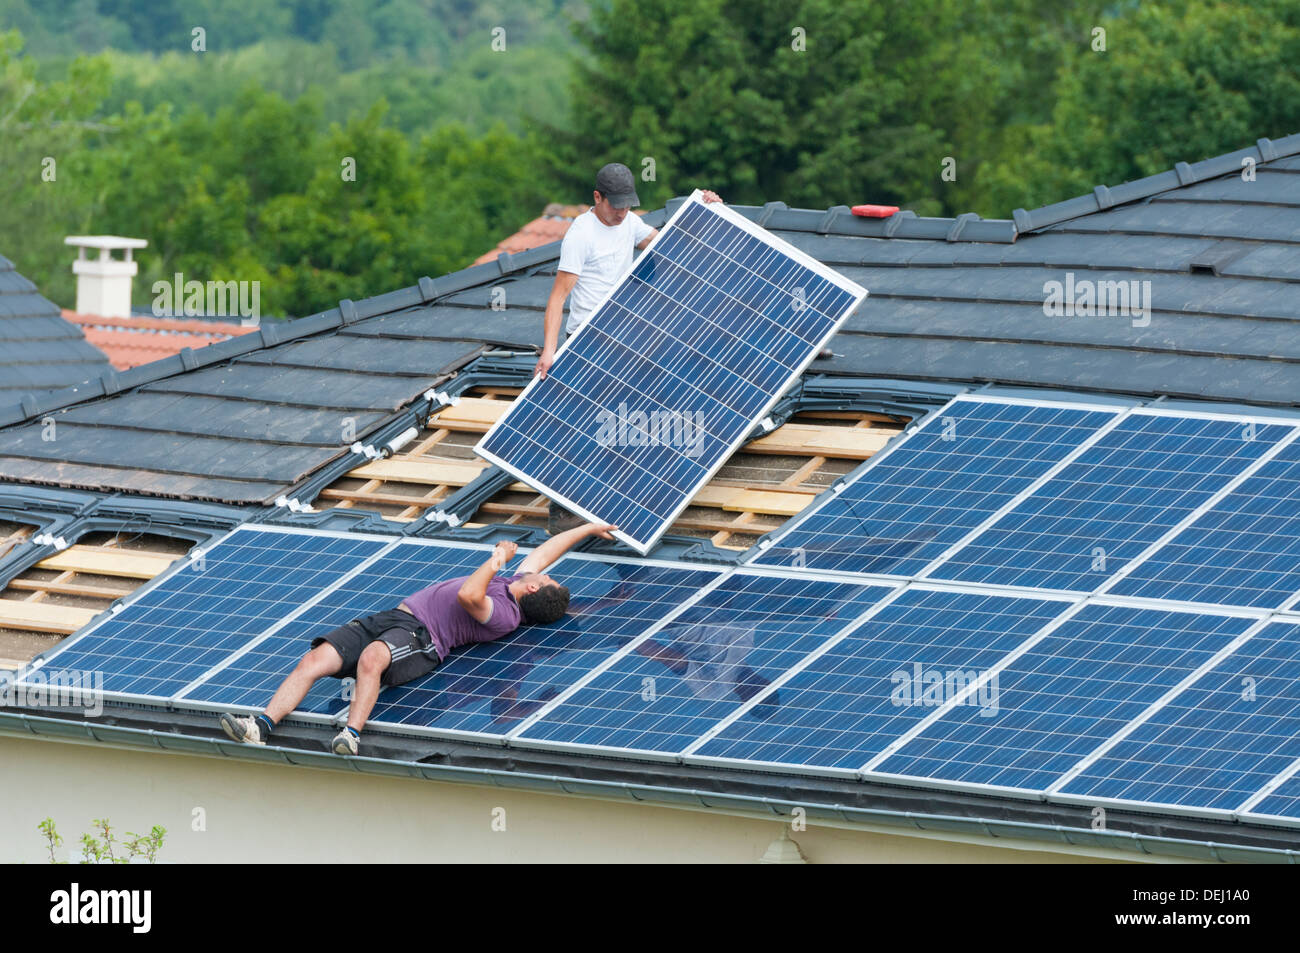 Installation Of Photovoltaic Solar Panels On Roof Of House